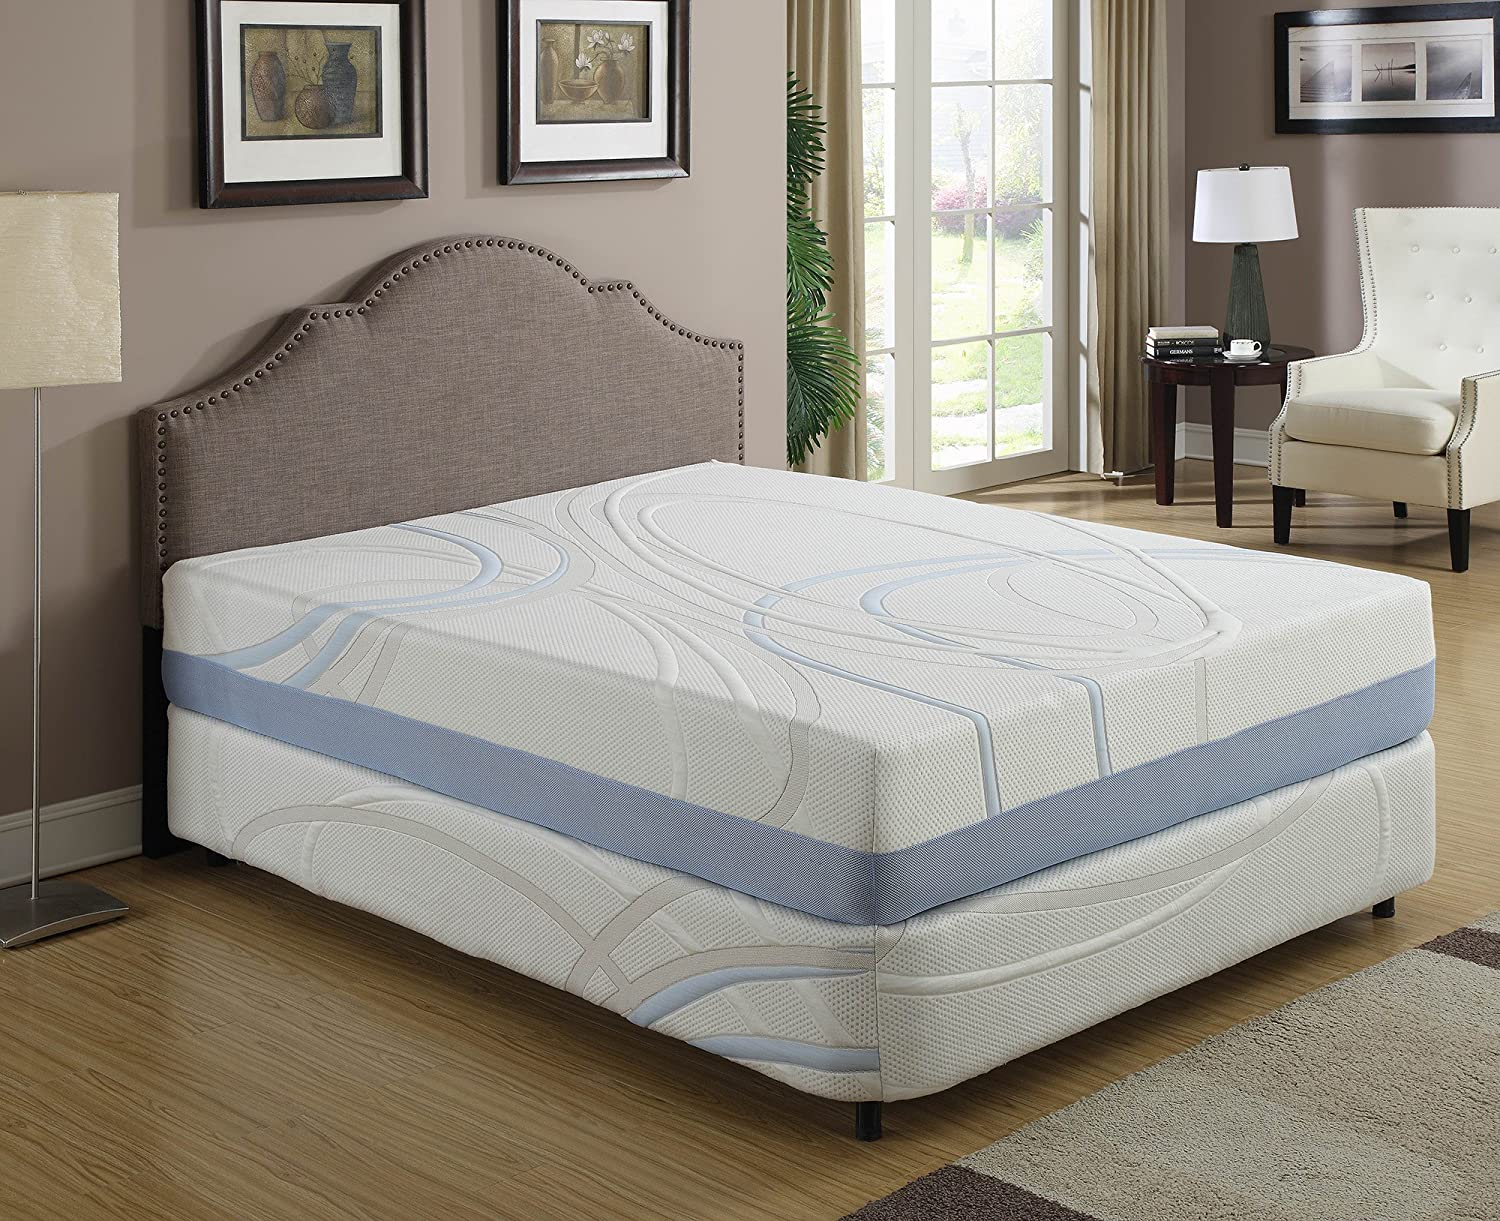 AC Pacific Full Size Charcogel Gel Infused Memory Foam Mattress With Shape Contouring Features, Full Size, White